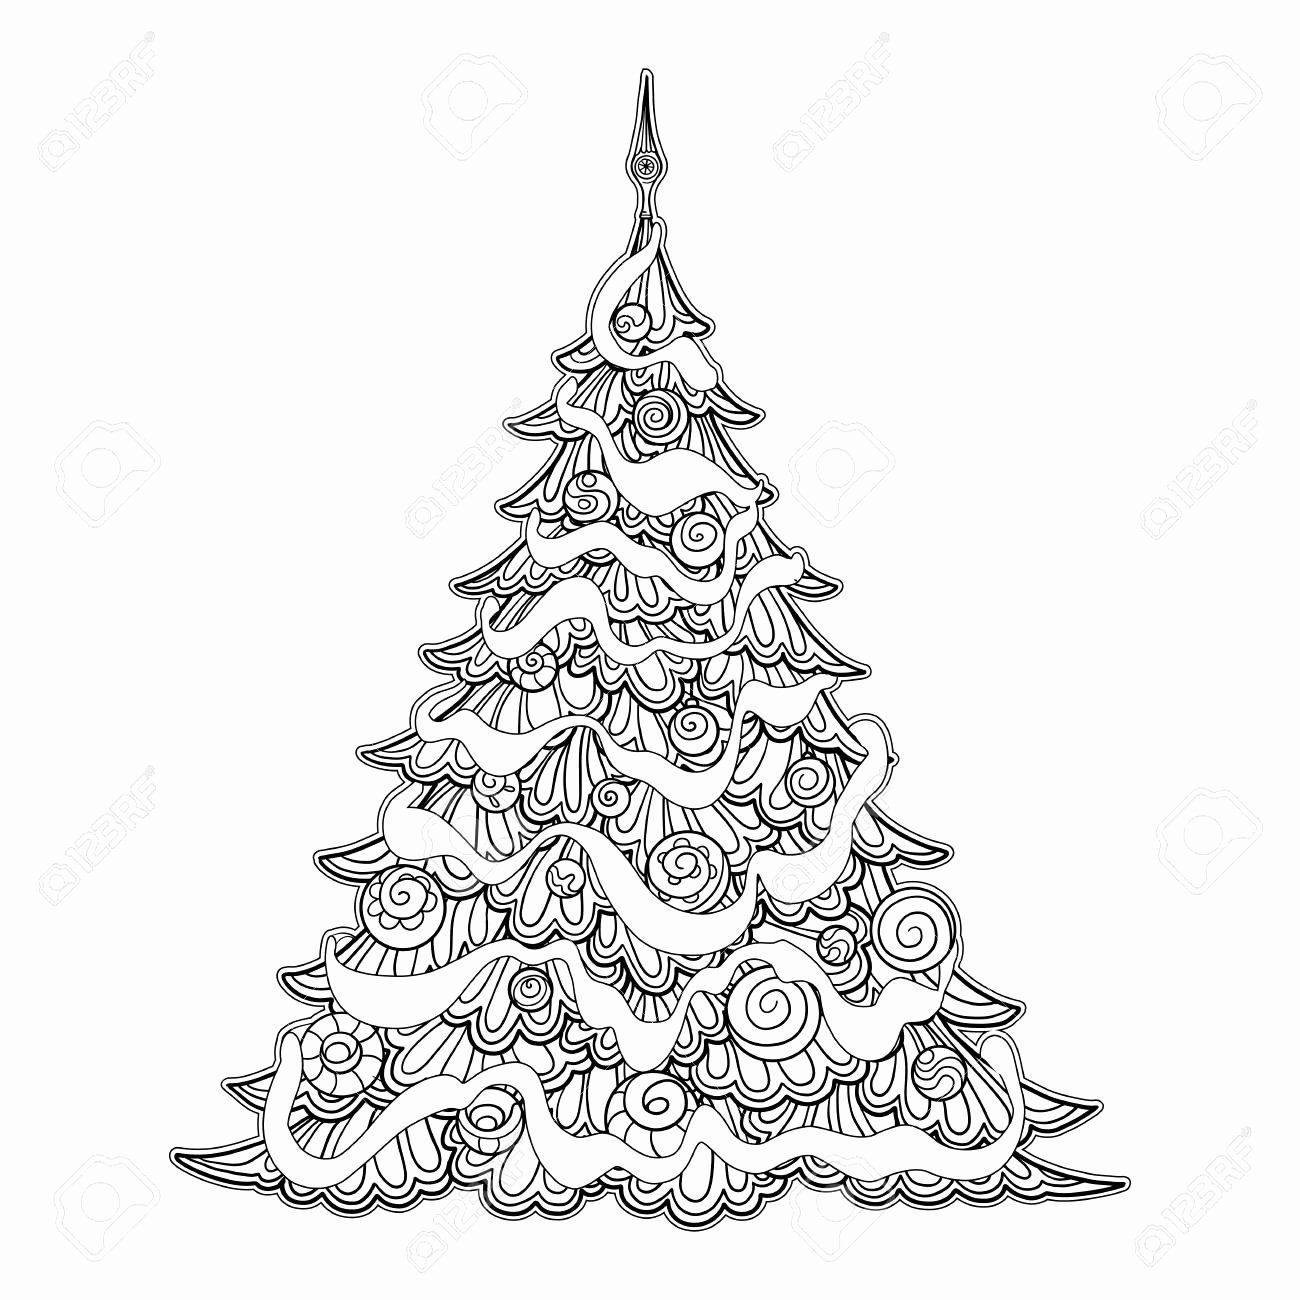 Dinosaur Christmas Tree Coloring Page Background